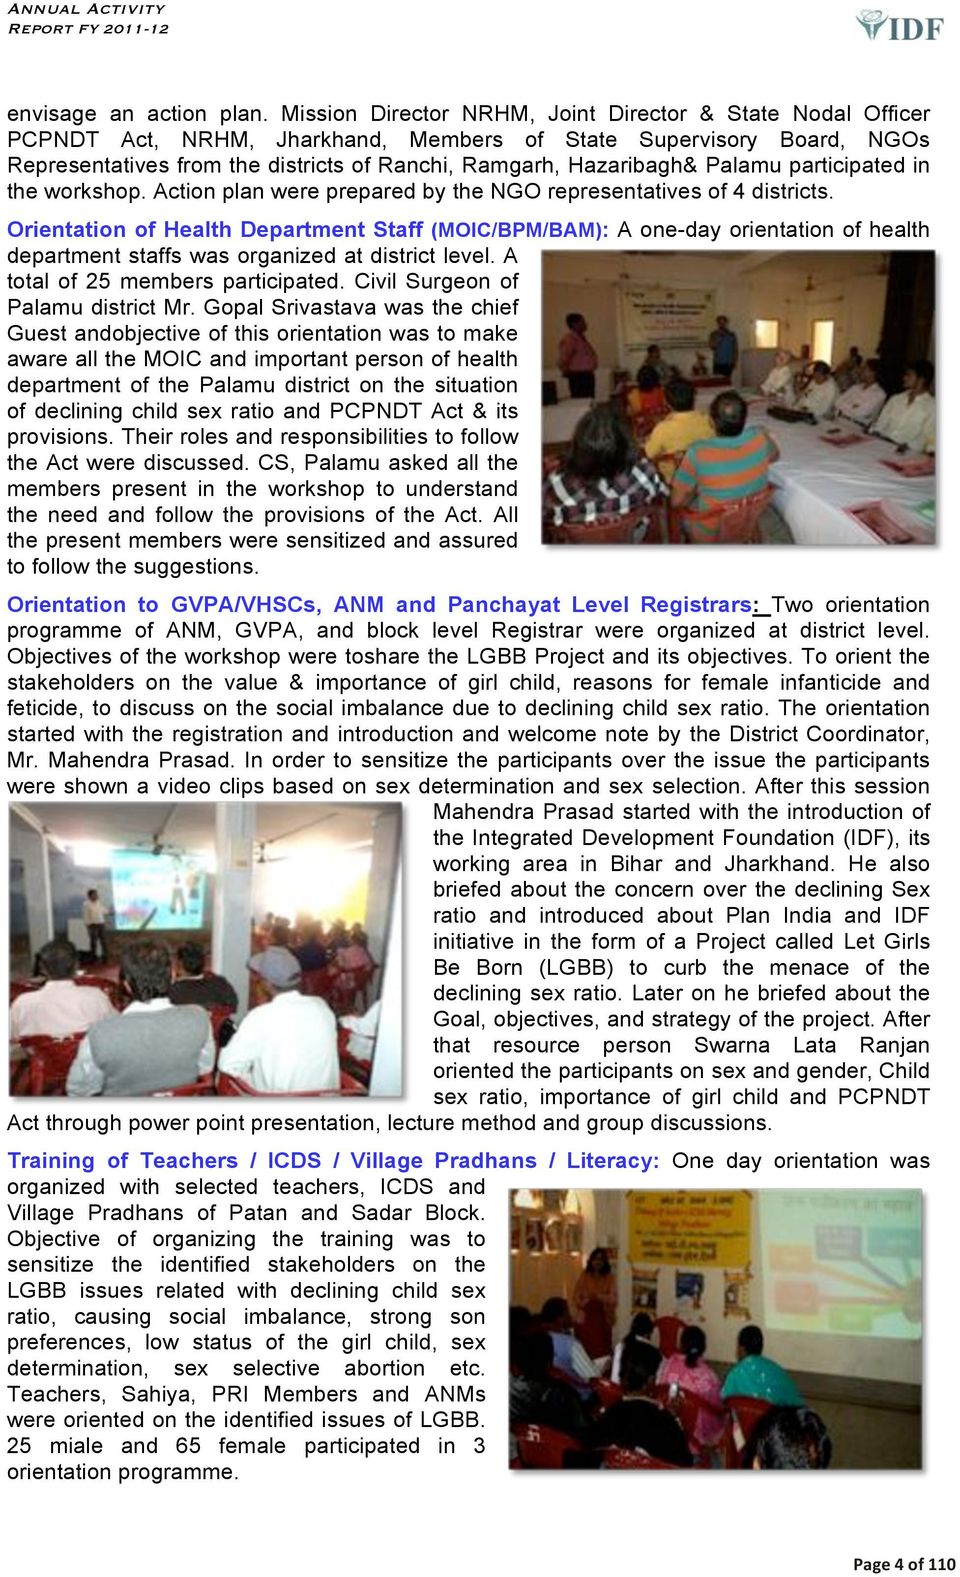 Palamu participated in the workshop. Action plan were prepared by the NGO representatives of 4 districts.